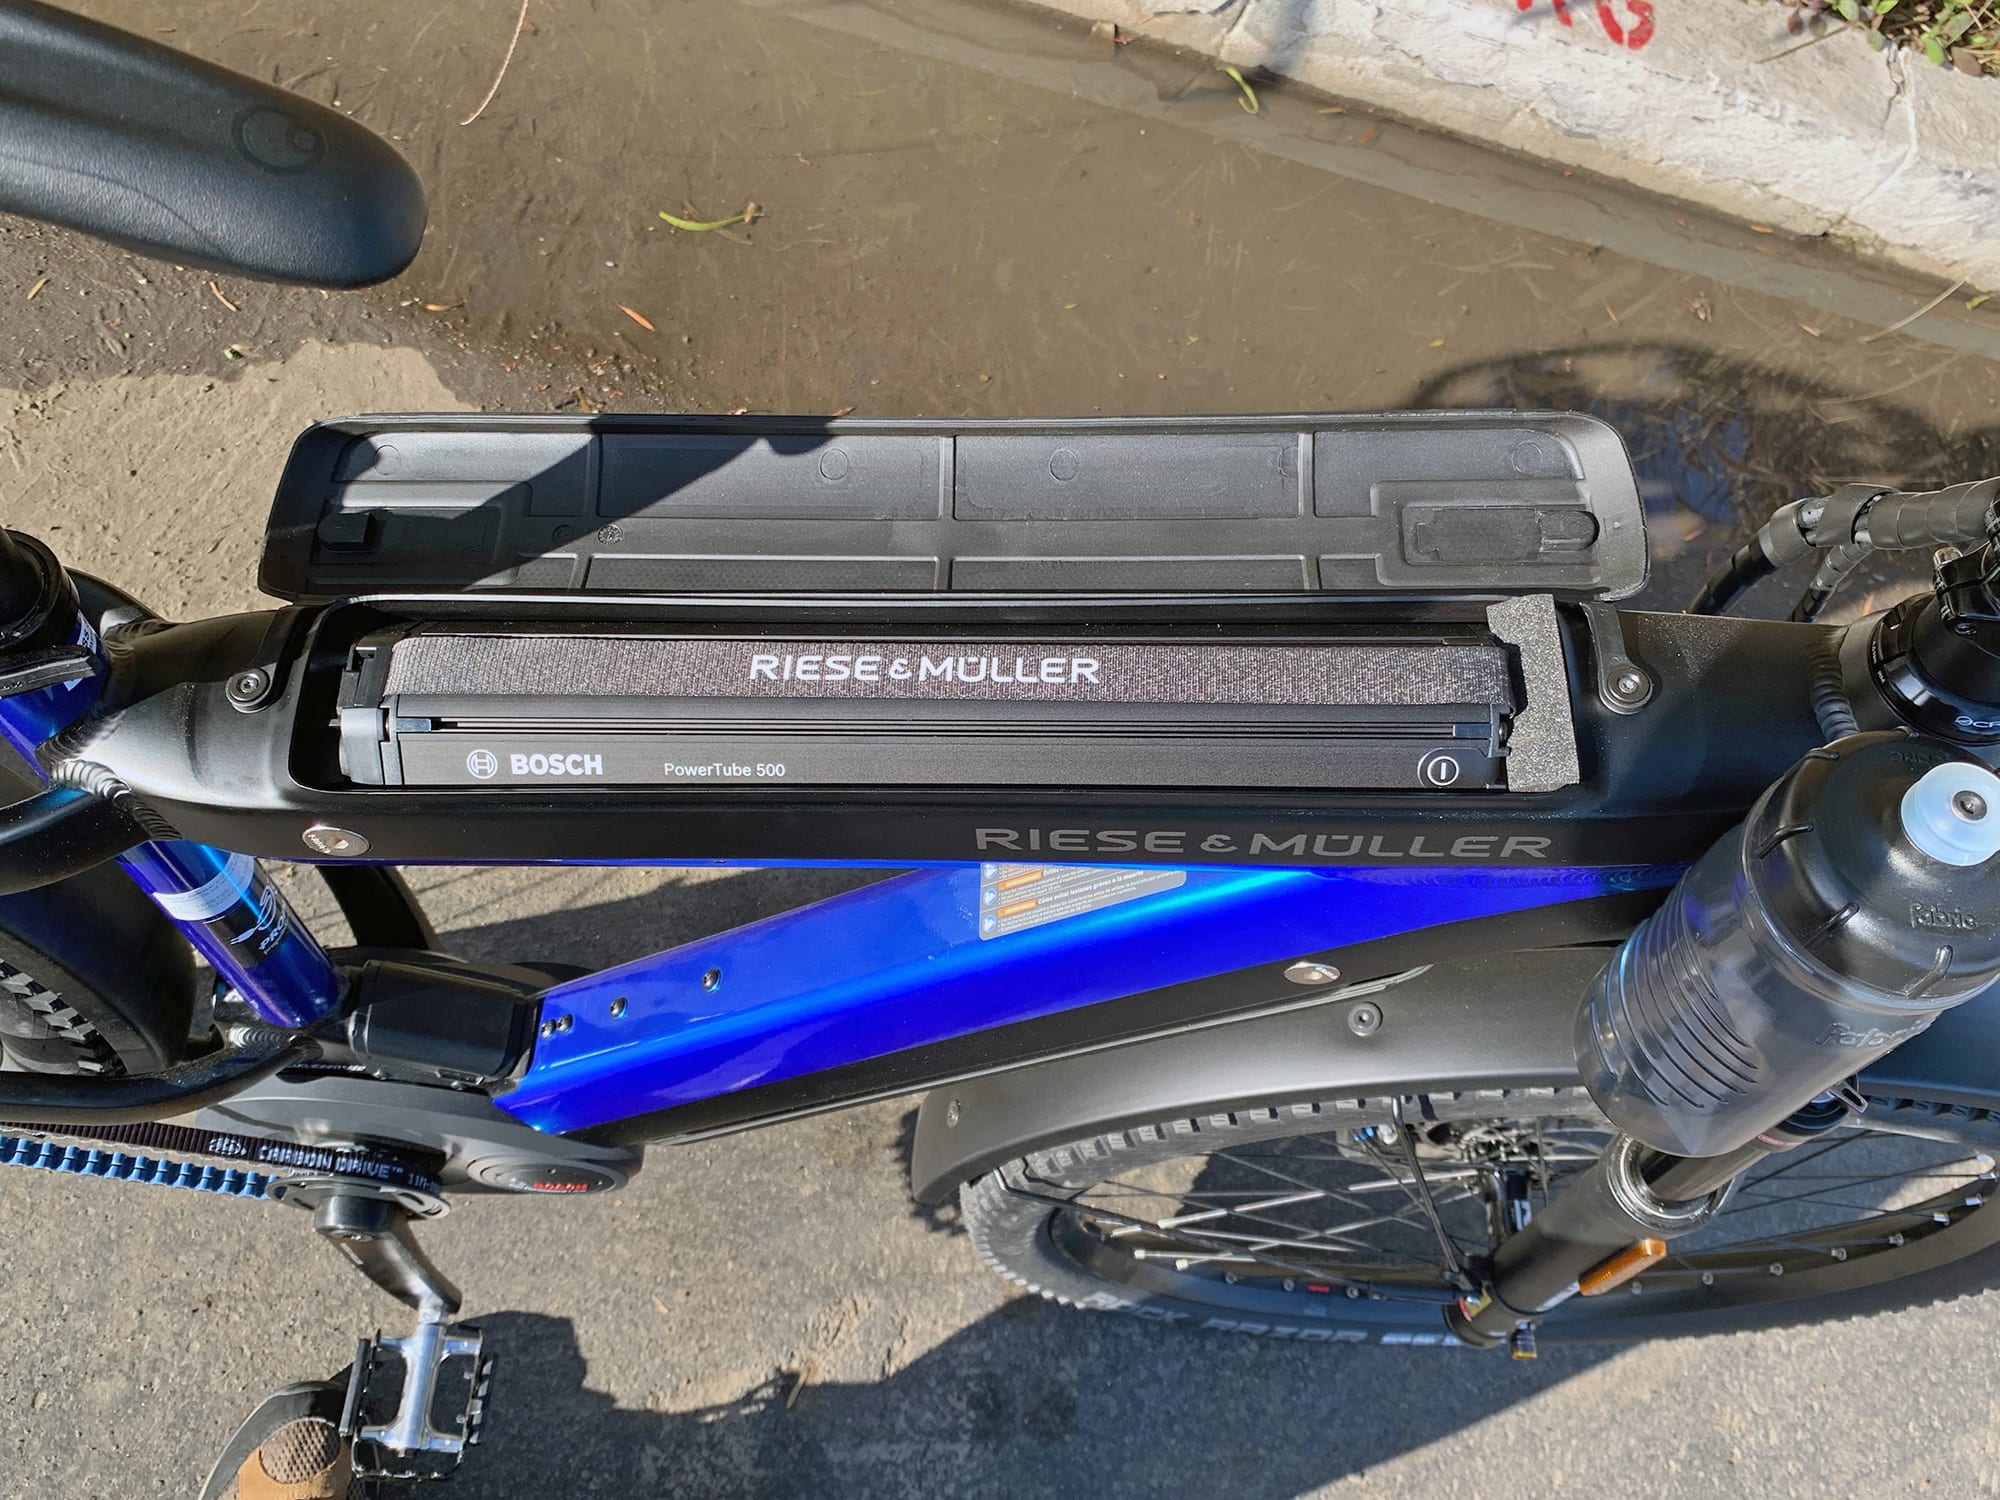 fd33a588386 Riese & Müller Supercharger GX Rohloff HS Review - Prices, Specs ...